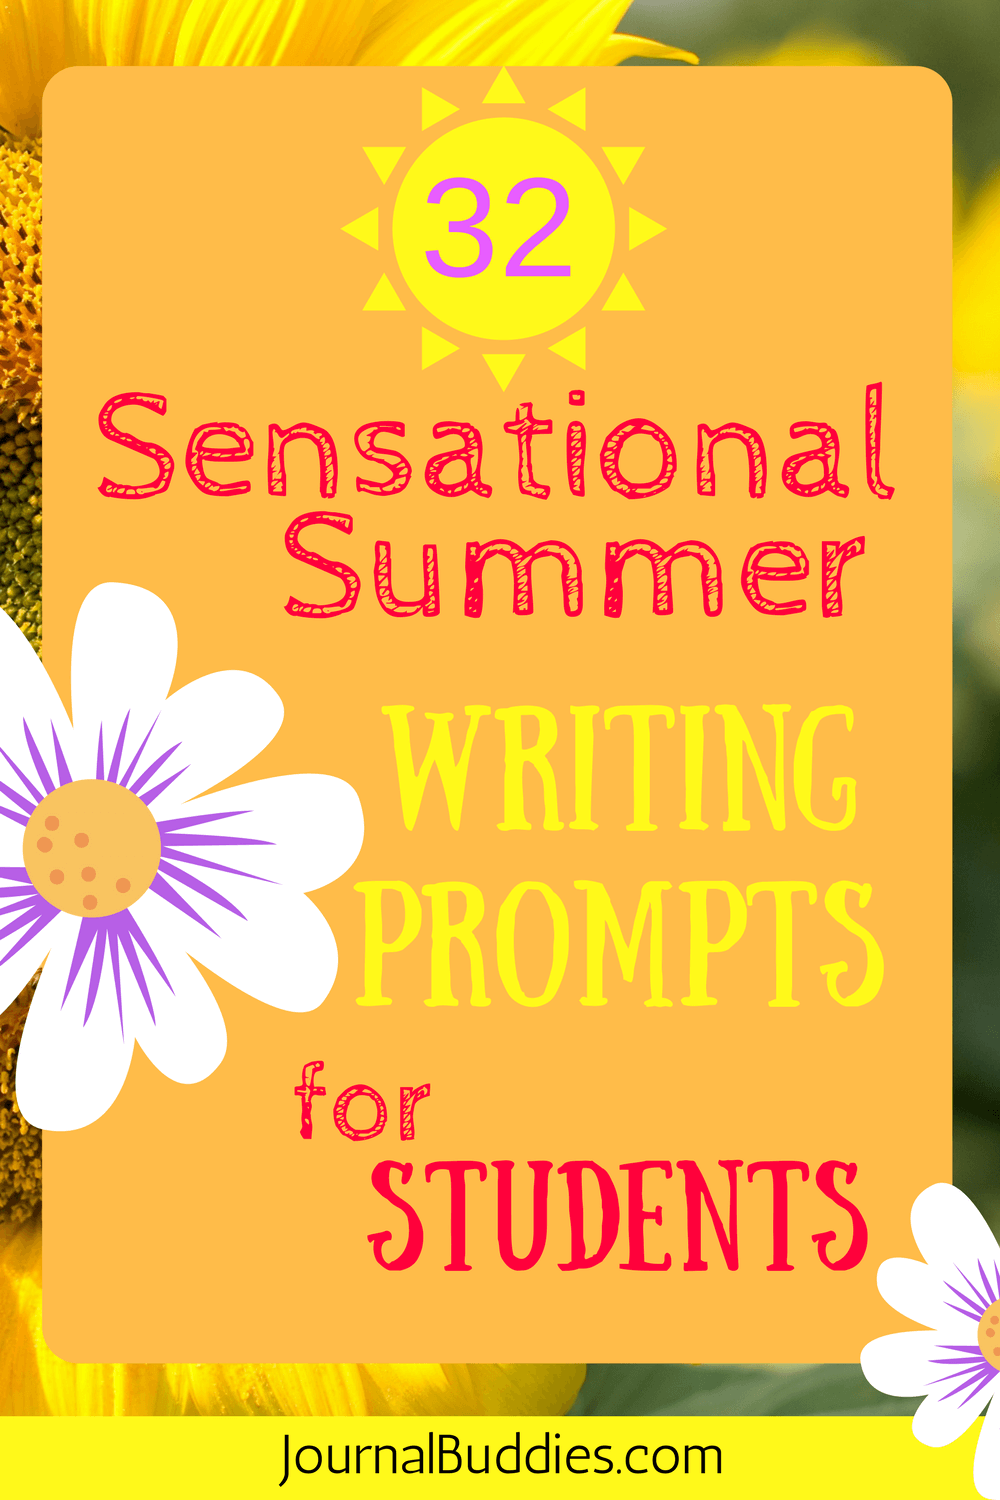 Sensational Summer Writing Prompts